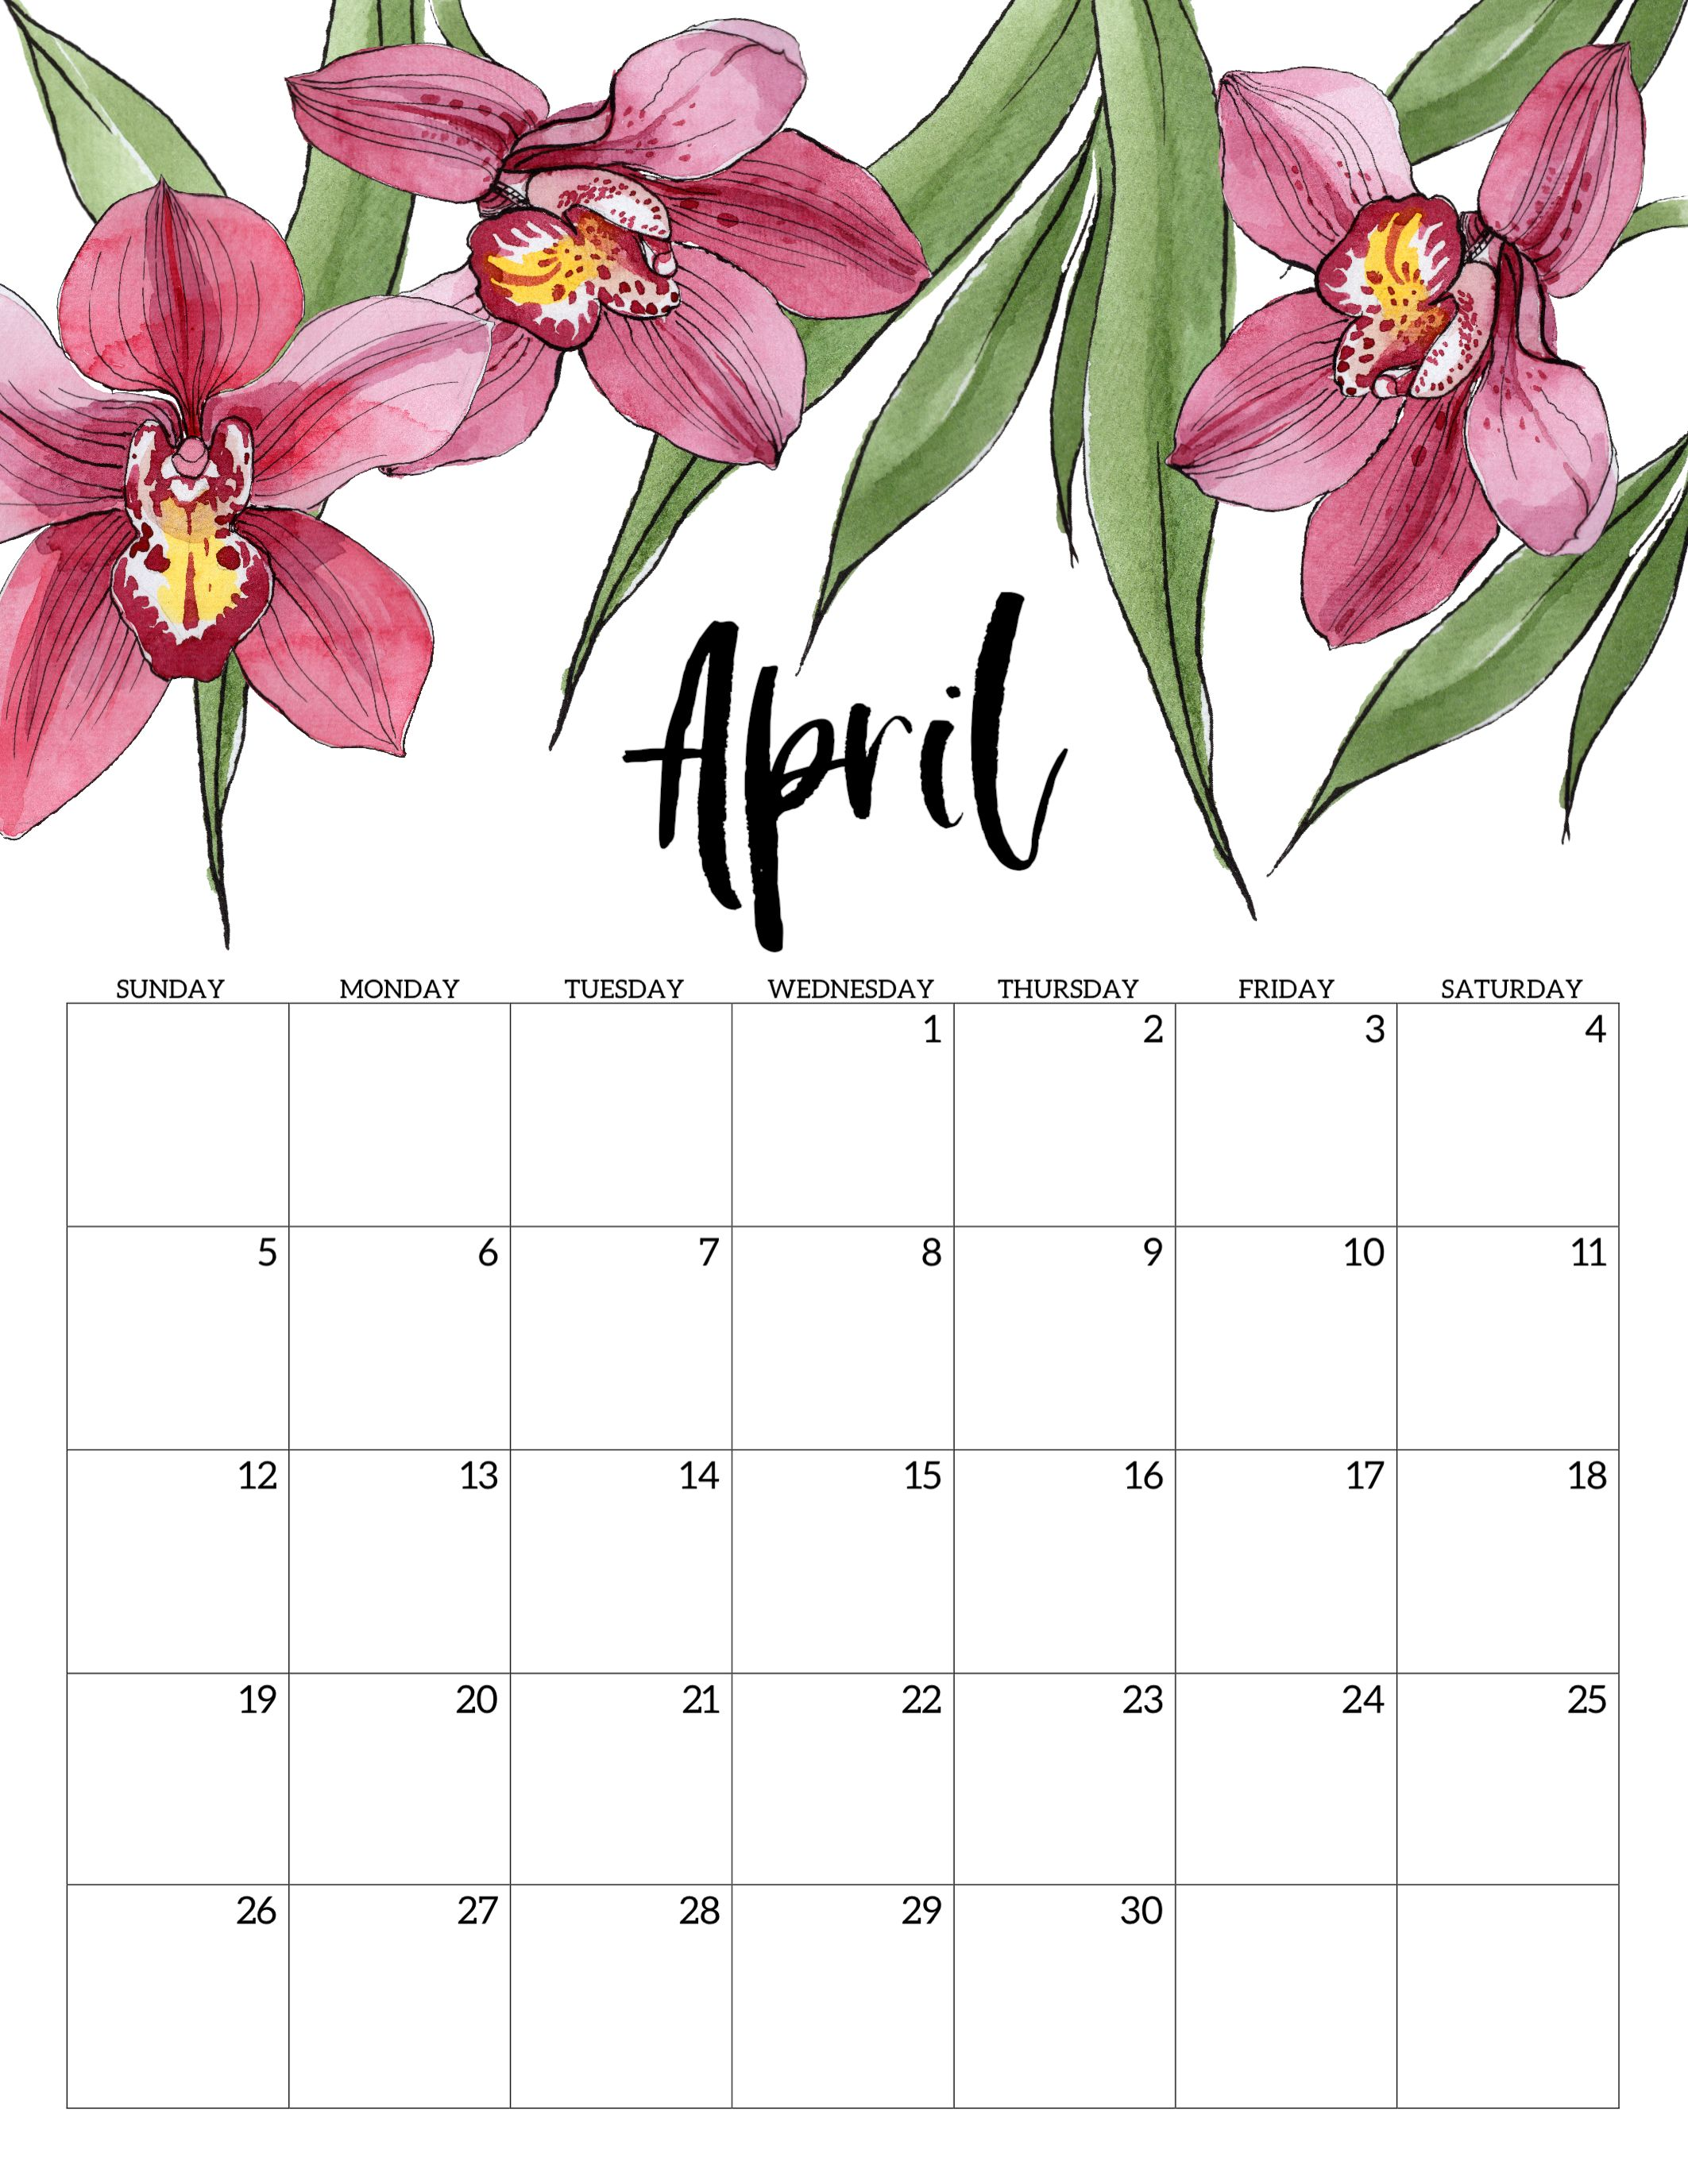 April 2020 Calendar Wallpapers   Top April 2020 Calendar 2125x2750